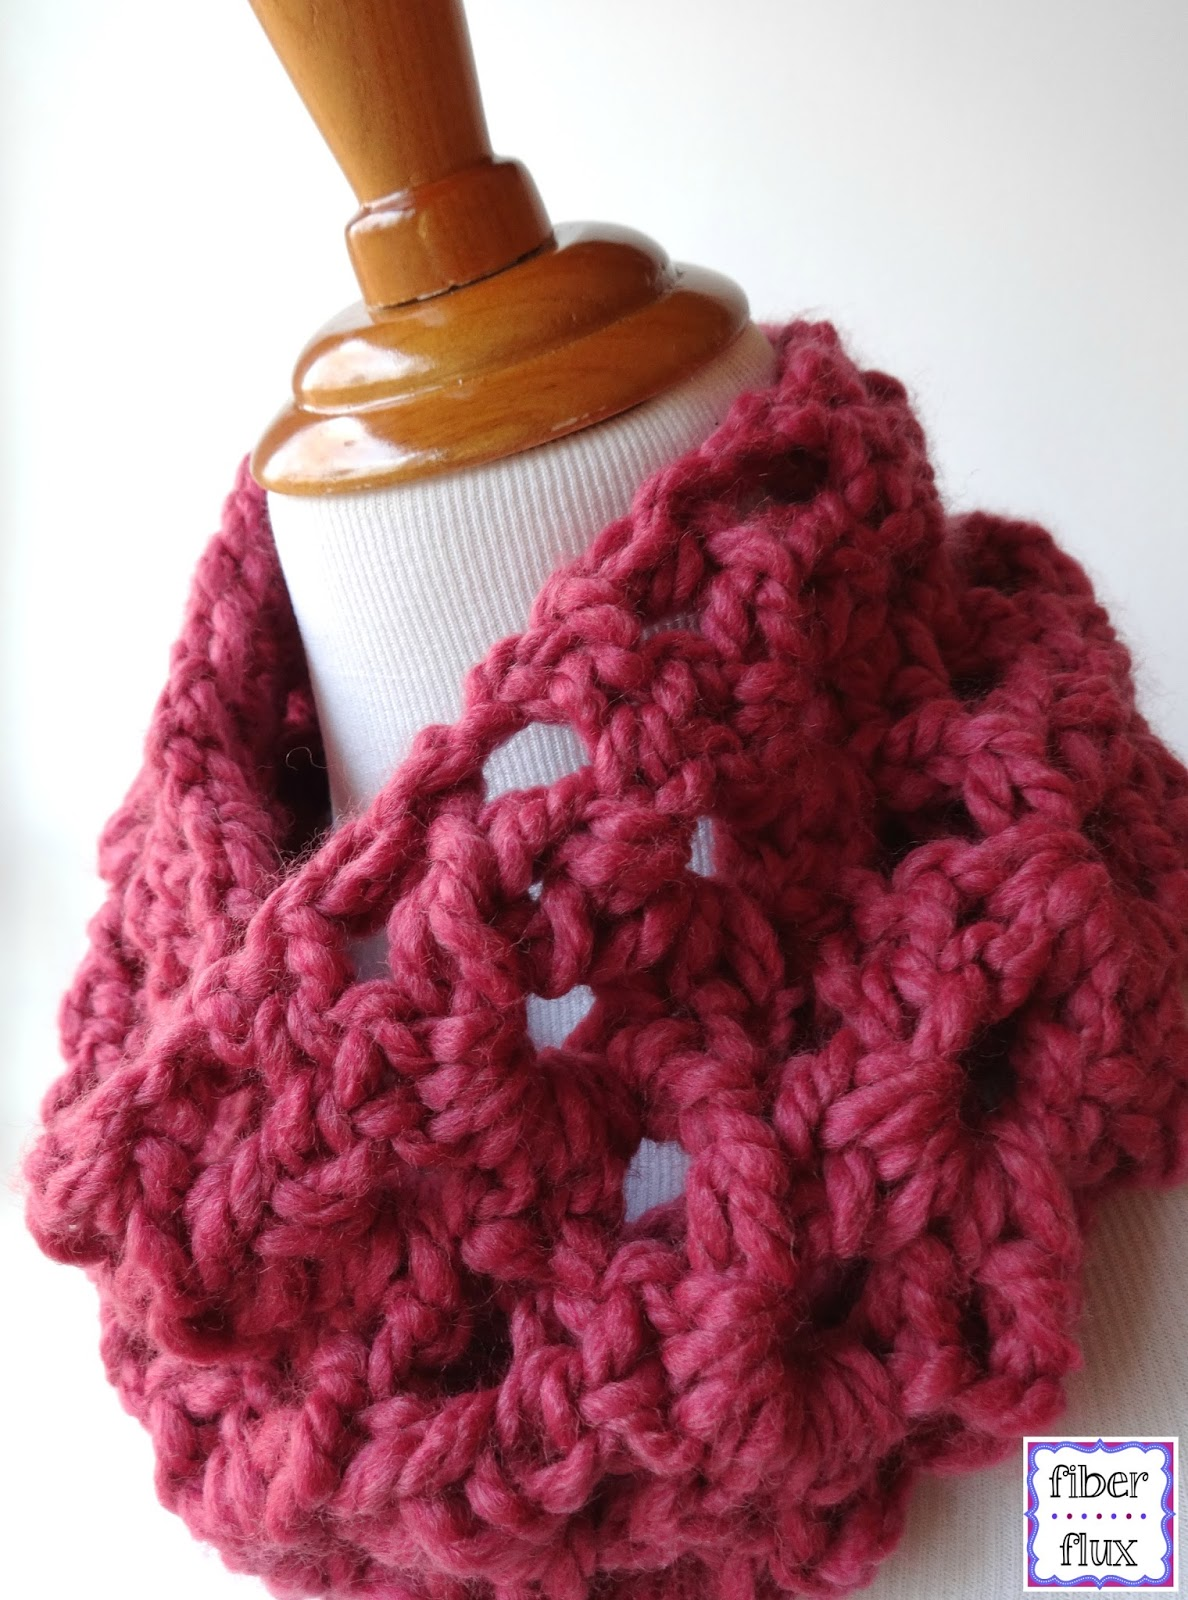 Free Crochet Patterns Cowls : Fiber Flux: Free Crochet Pattern...Agnes Lace Cowl!